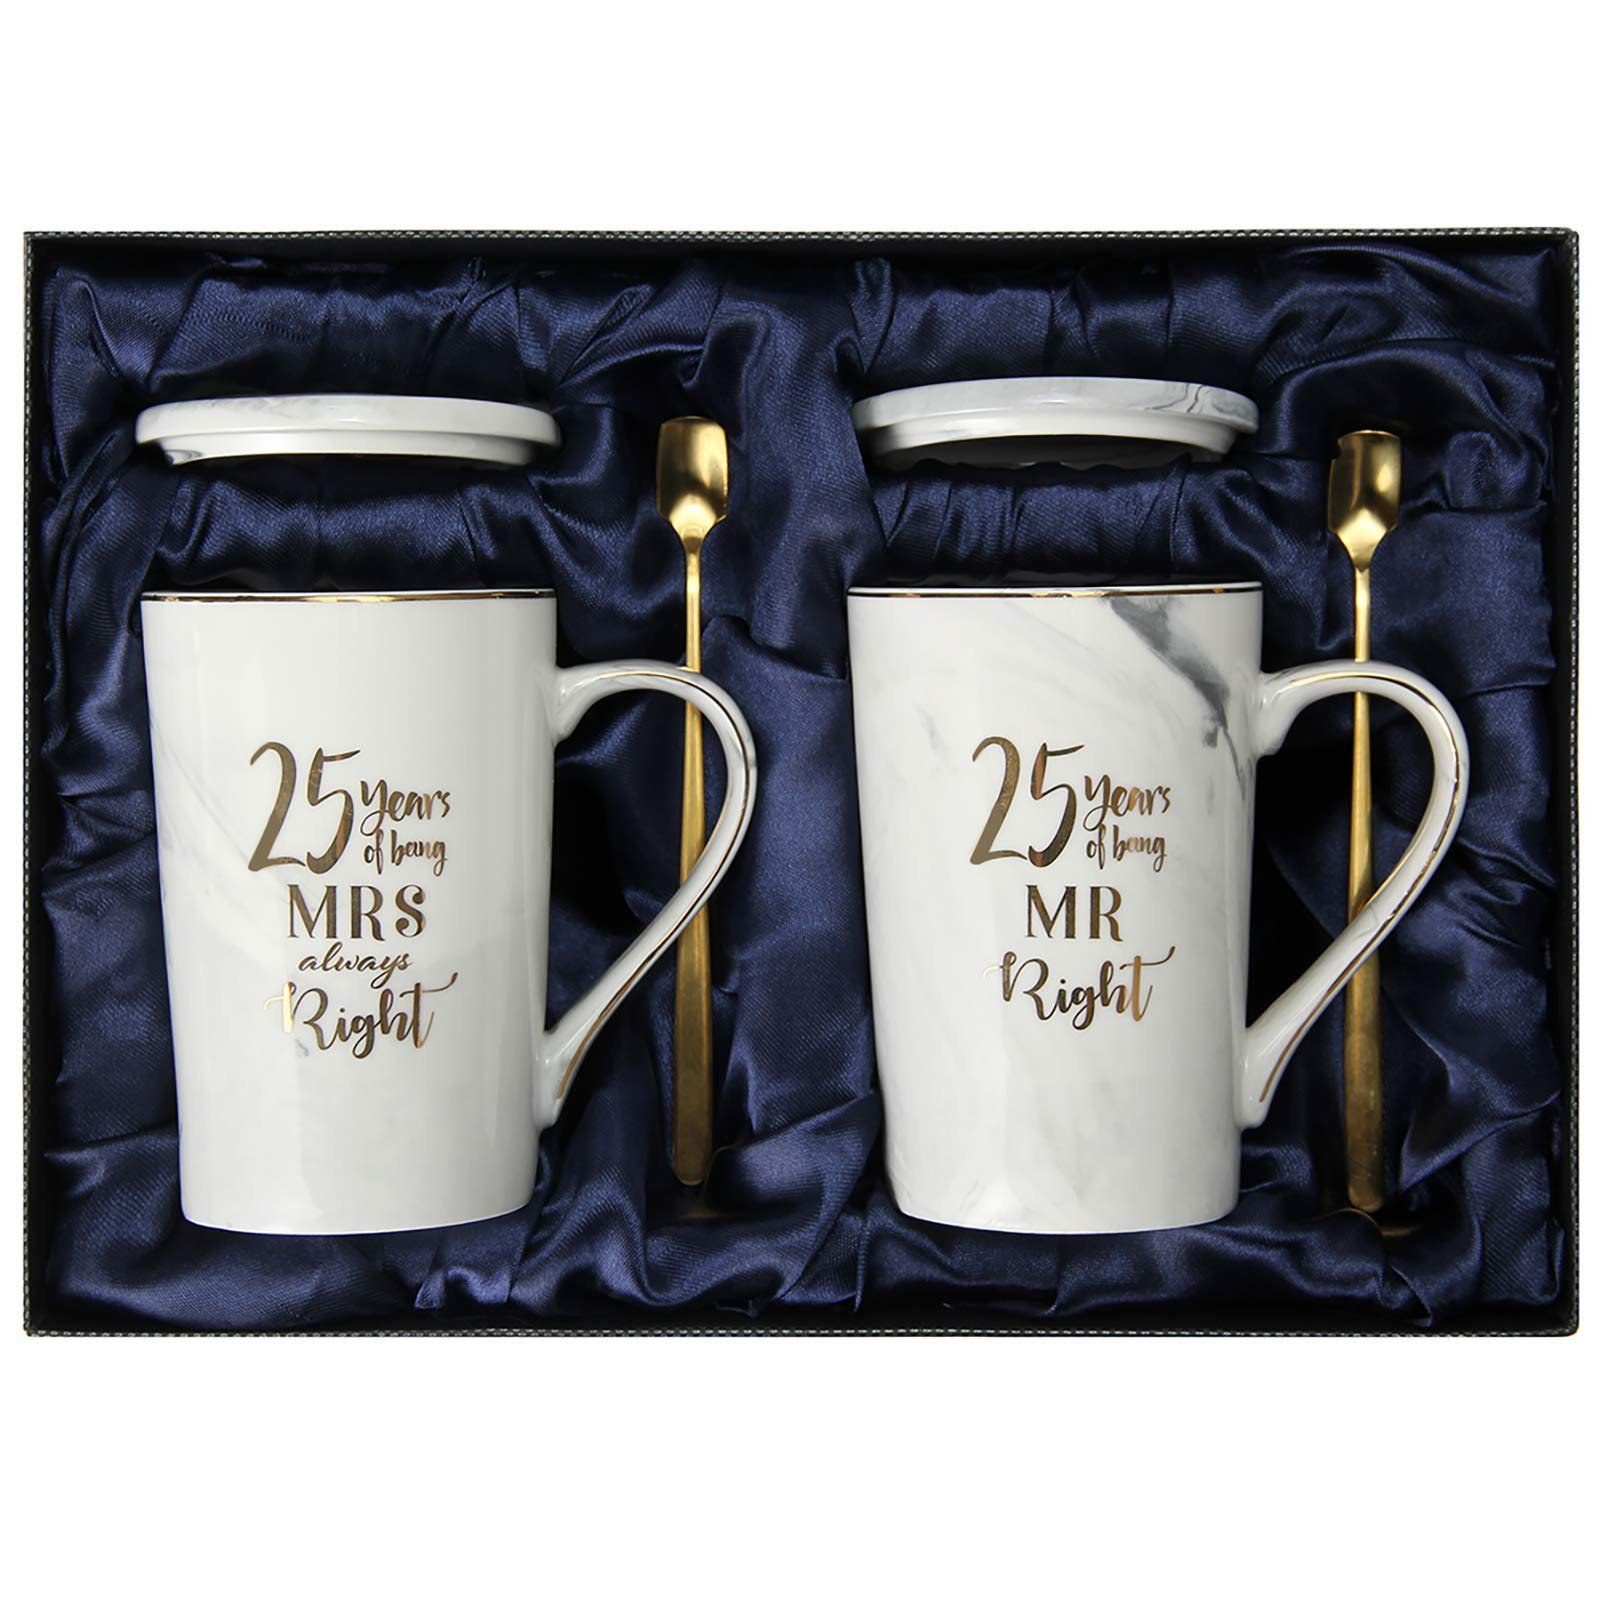 25th Wedding Anniversary Gifts , 25th Anniversary Gifts for couple, Gifts For Husband, Wife and Happy Couples for Men and Women - 25 Year Parents Anniversary Gift